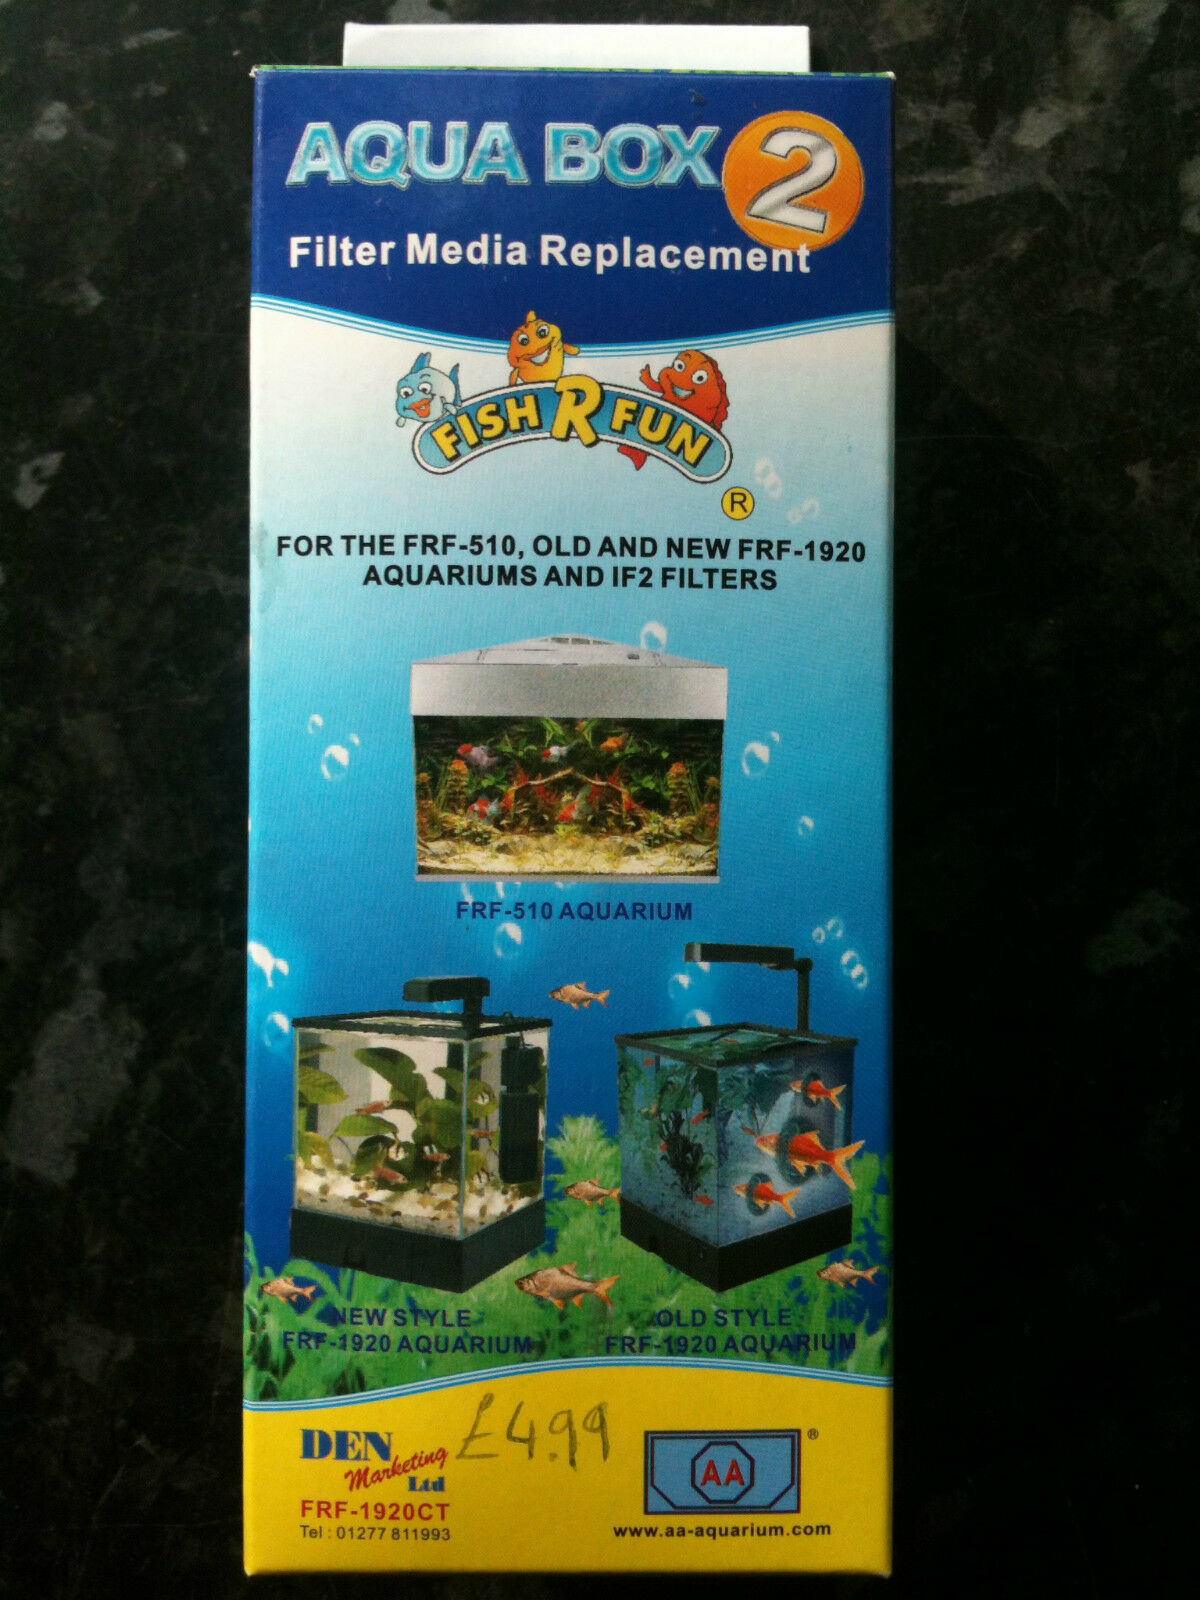 FRF-1920CT Spare Filter Media Aqua Box 2